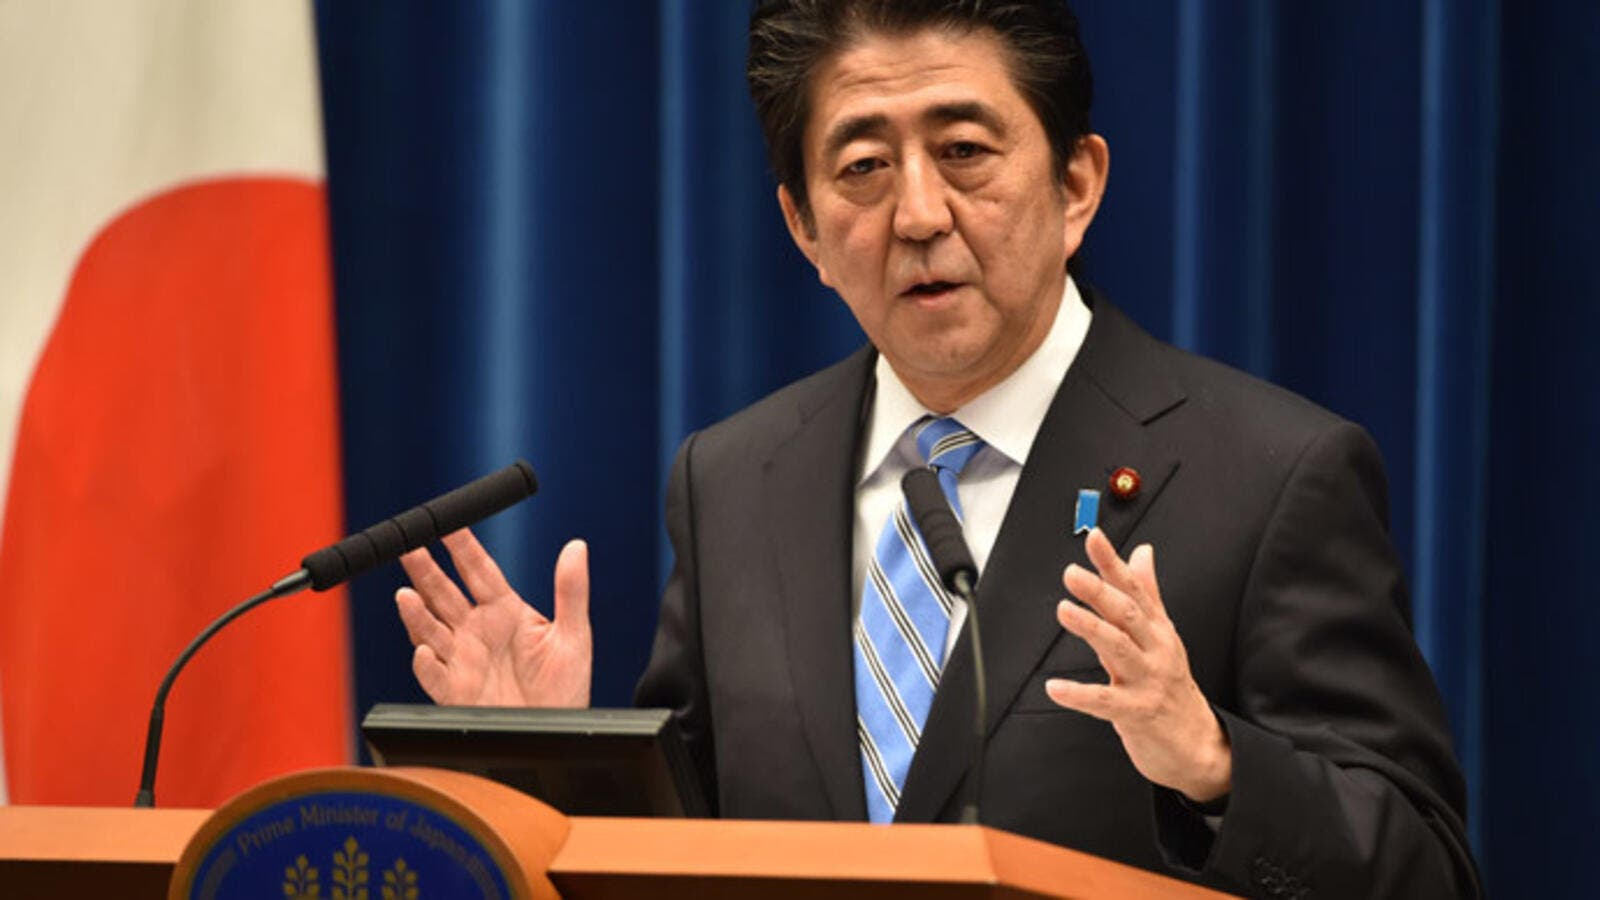 Japan's religious freedom means that nobody is asked their religion, so Muslims are of course allowed. Photo shows Japanese Prime Minster Shinzo Abe. (AFP/Kazuhiro Nogi)